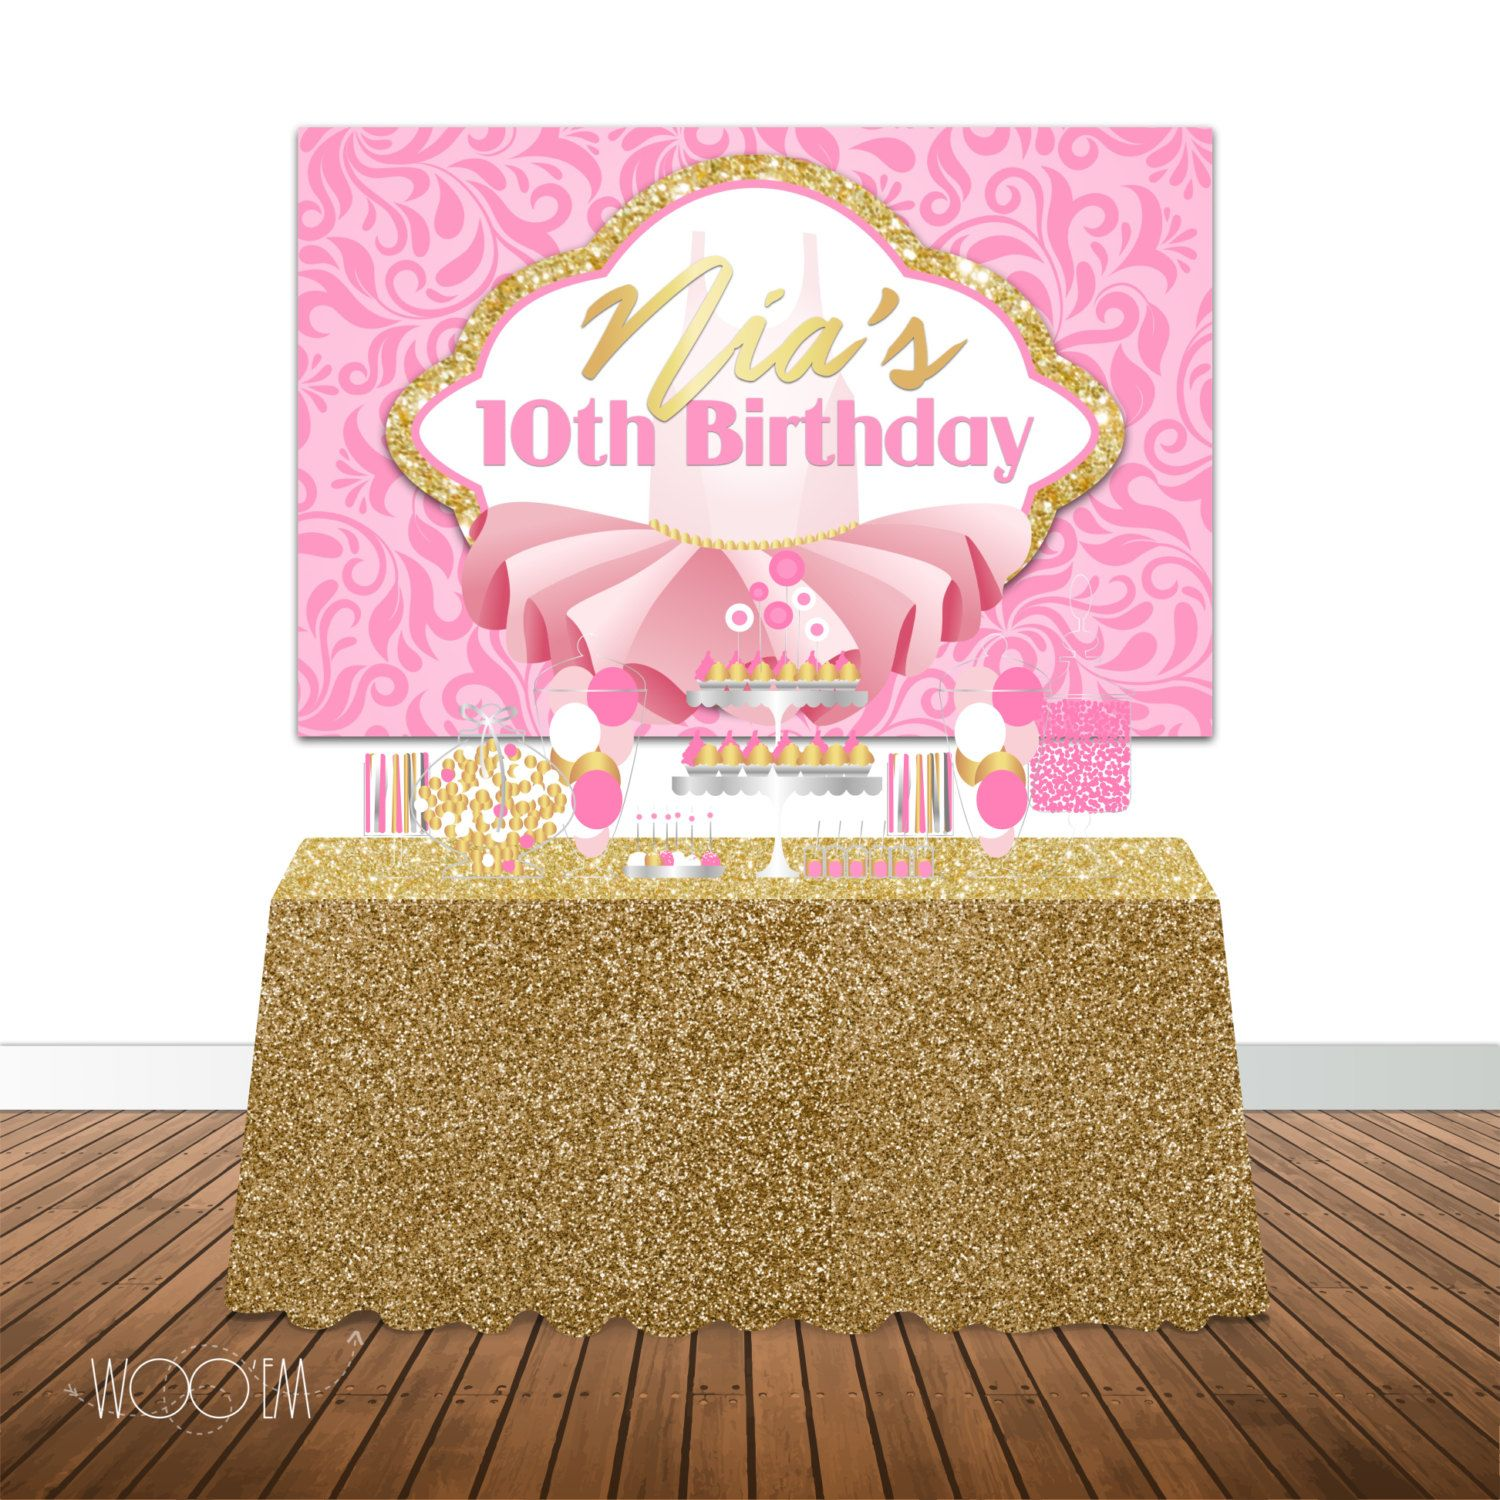 tutu themed birthday 6x4 candy buffet table banner backdrop